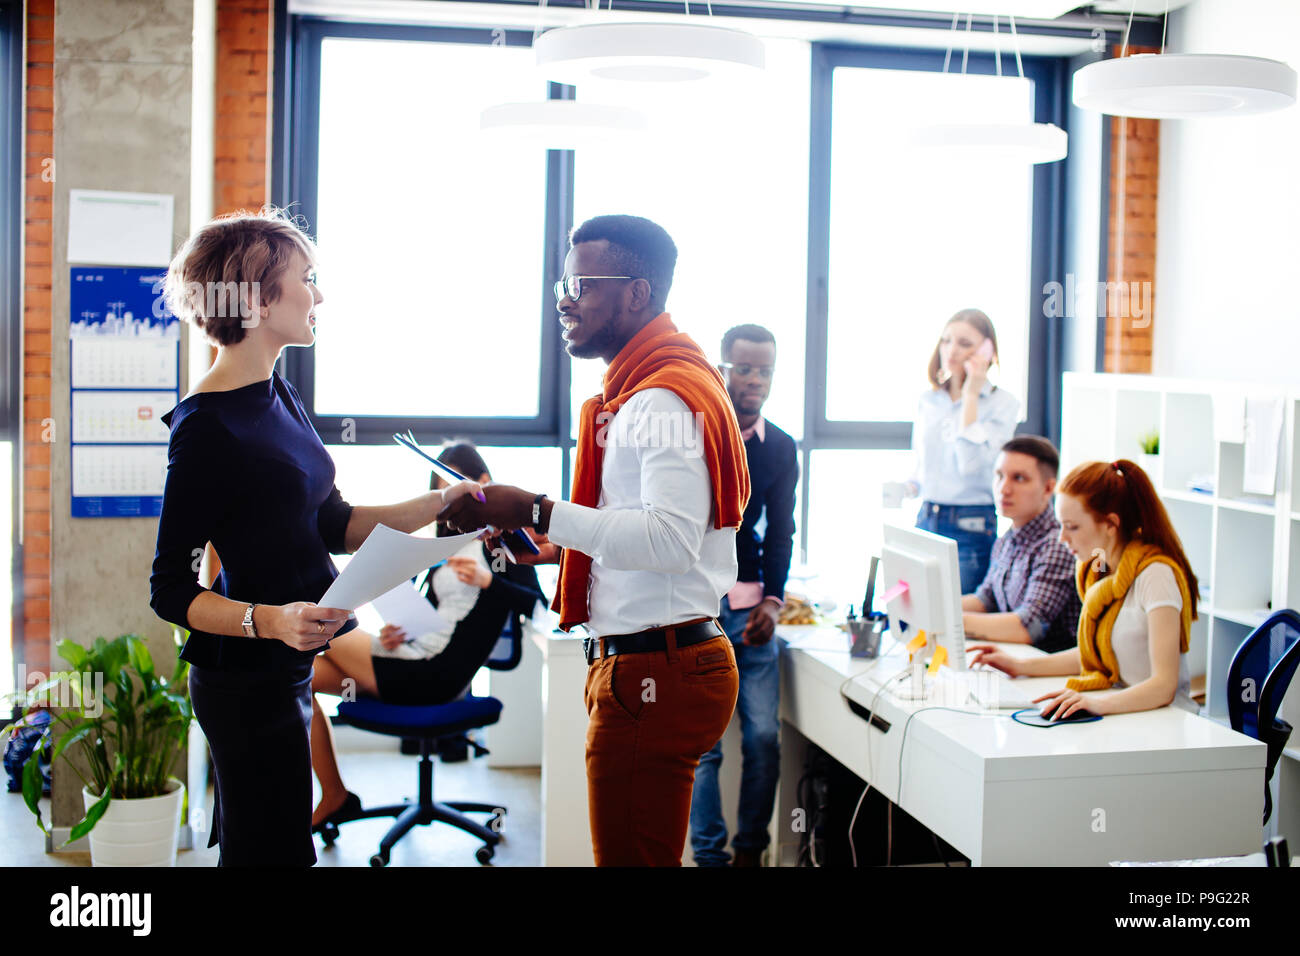 afro businessman and Caucasian businesswoman showing agreement. handshake among office workers - Stock Image